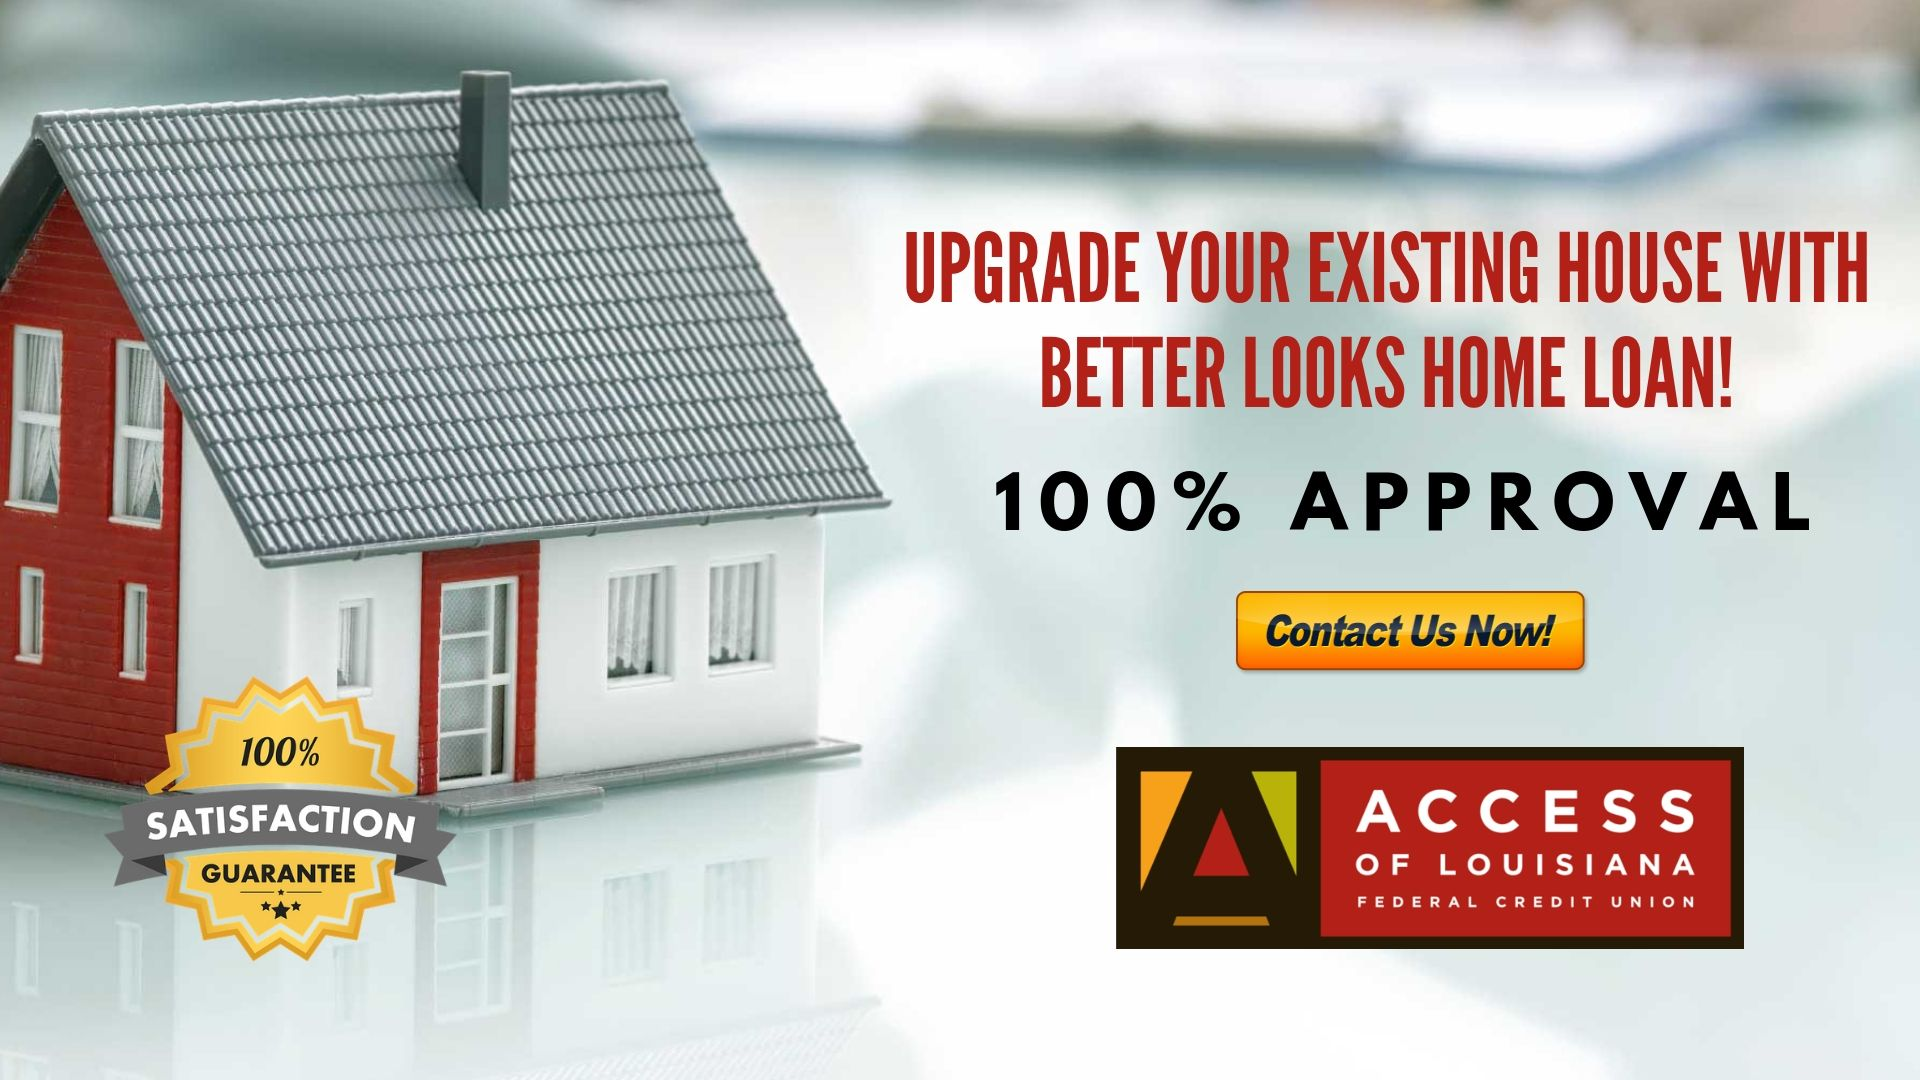 Are you looking for a home loan? At Access of Louisiana